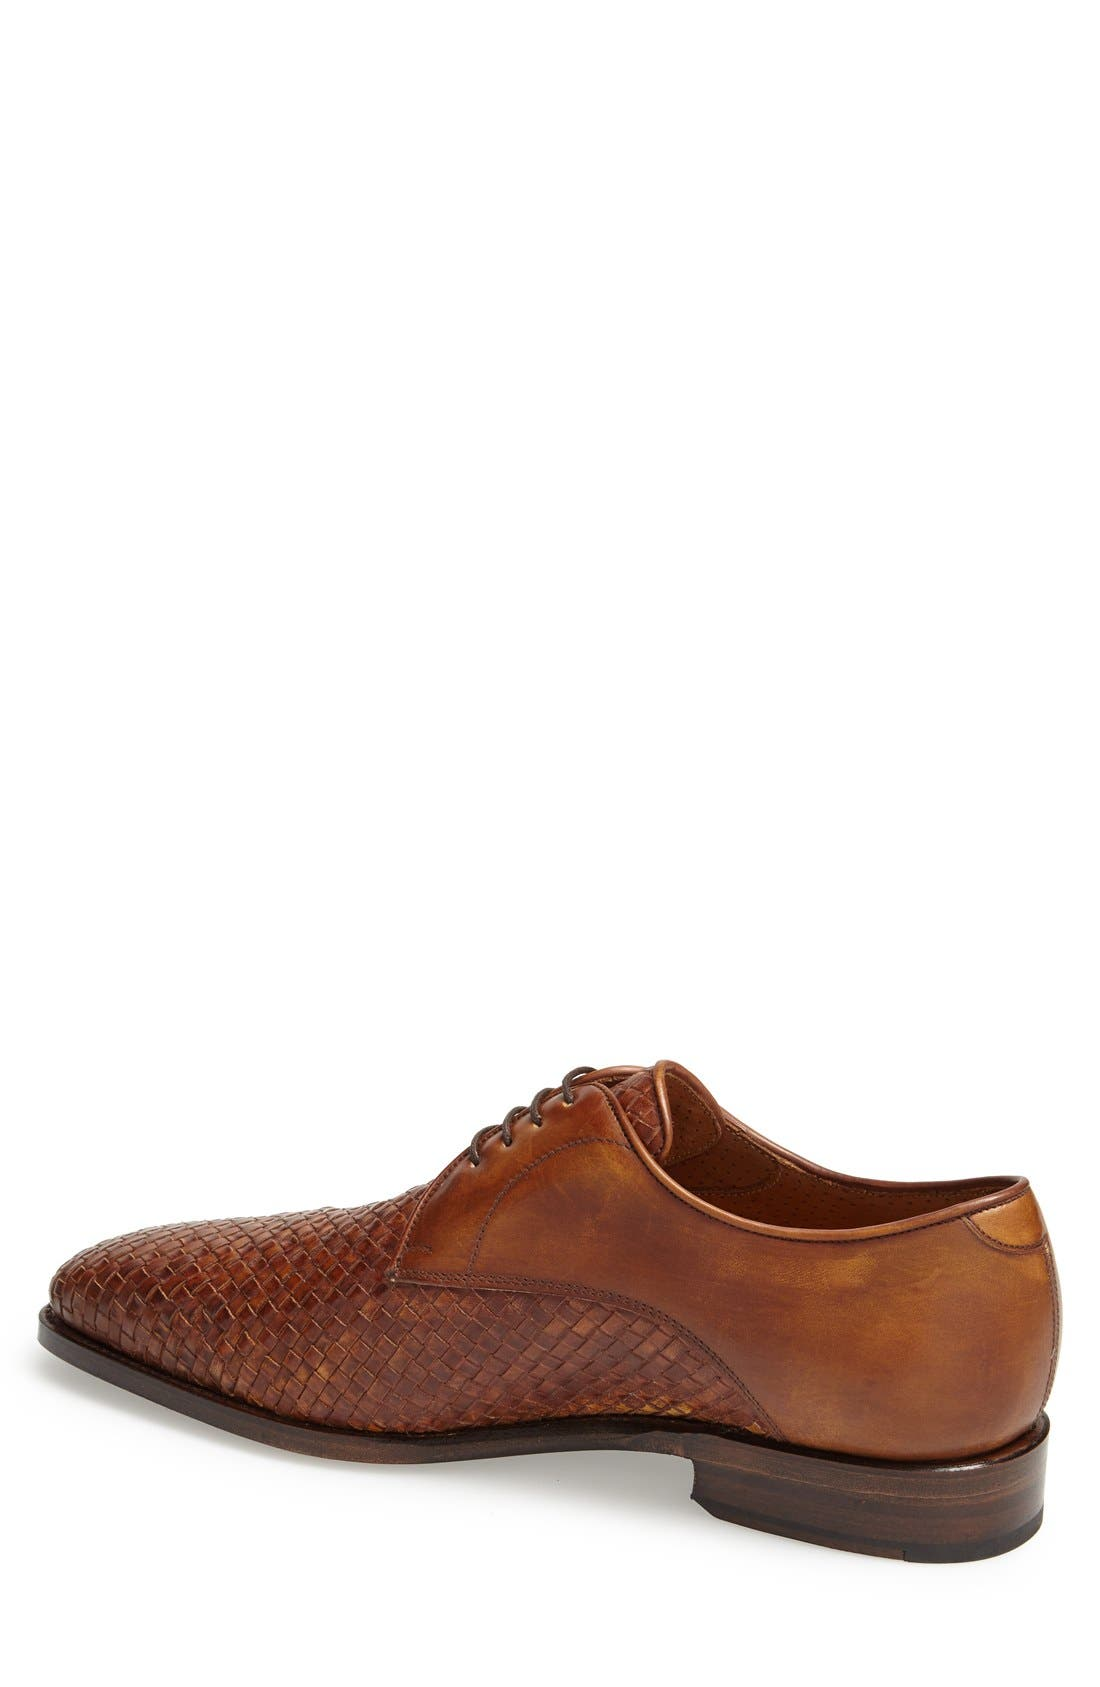 'Savannah' Woven Derby,                             Alternate thumbnail 2, color,                             Brown